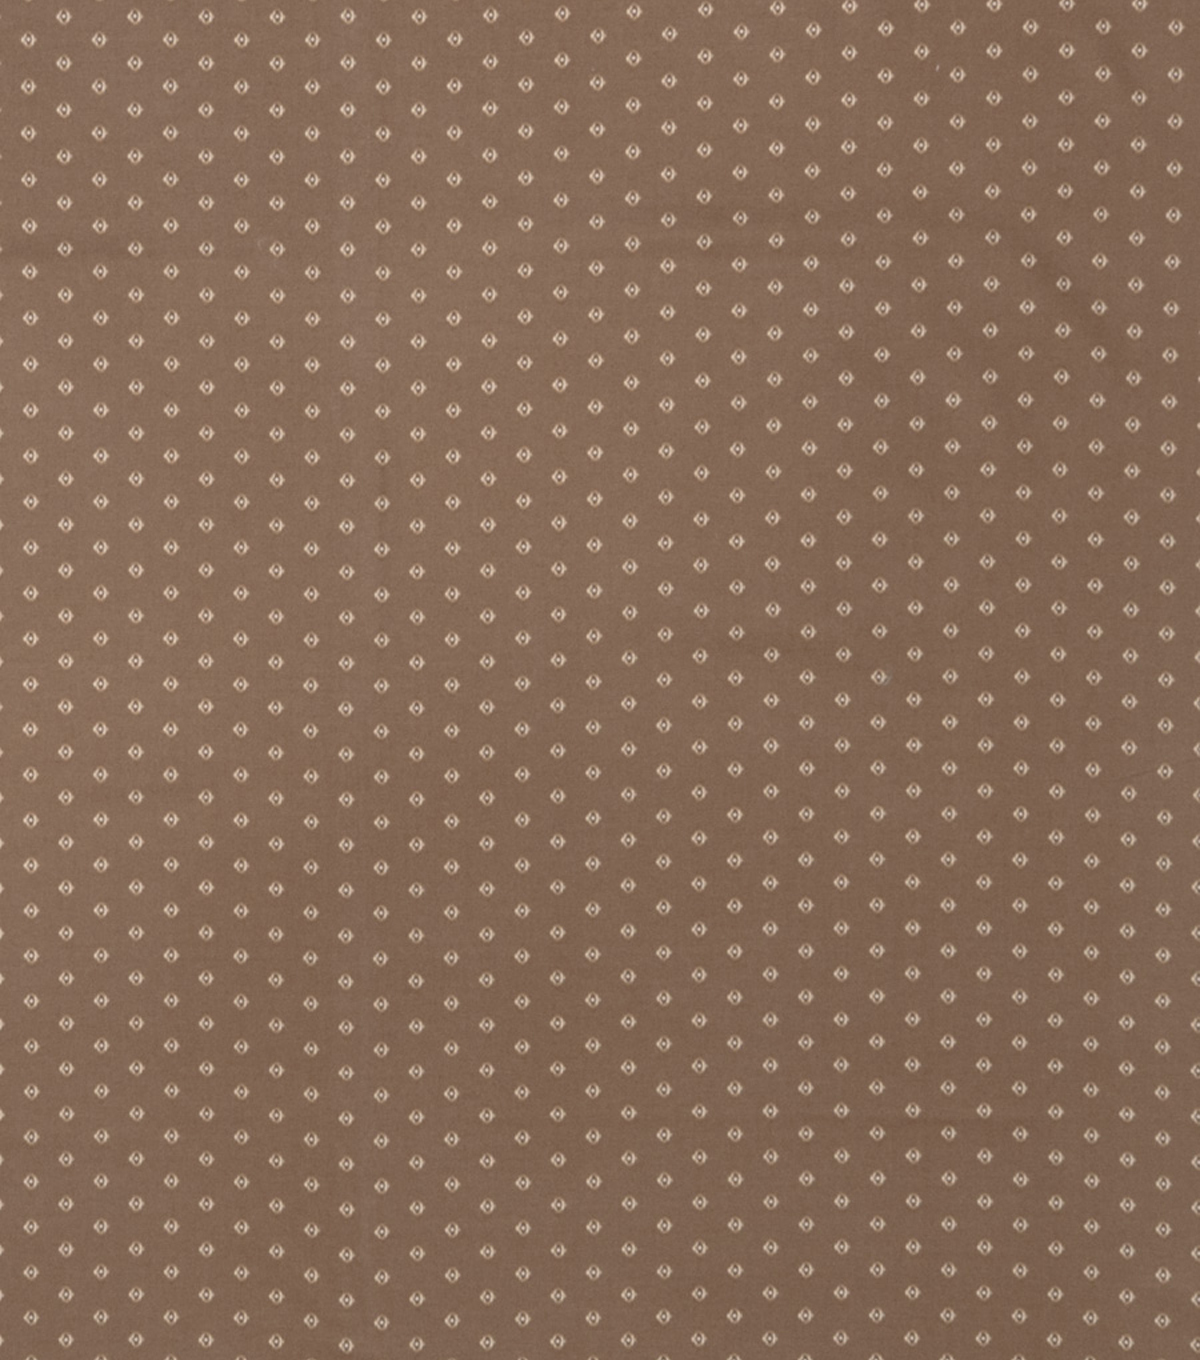 Home Decor 8\u0022x8\u0022 Fabric Swatch-SMC Designs Brodie / Mocha